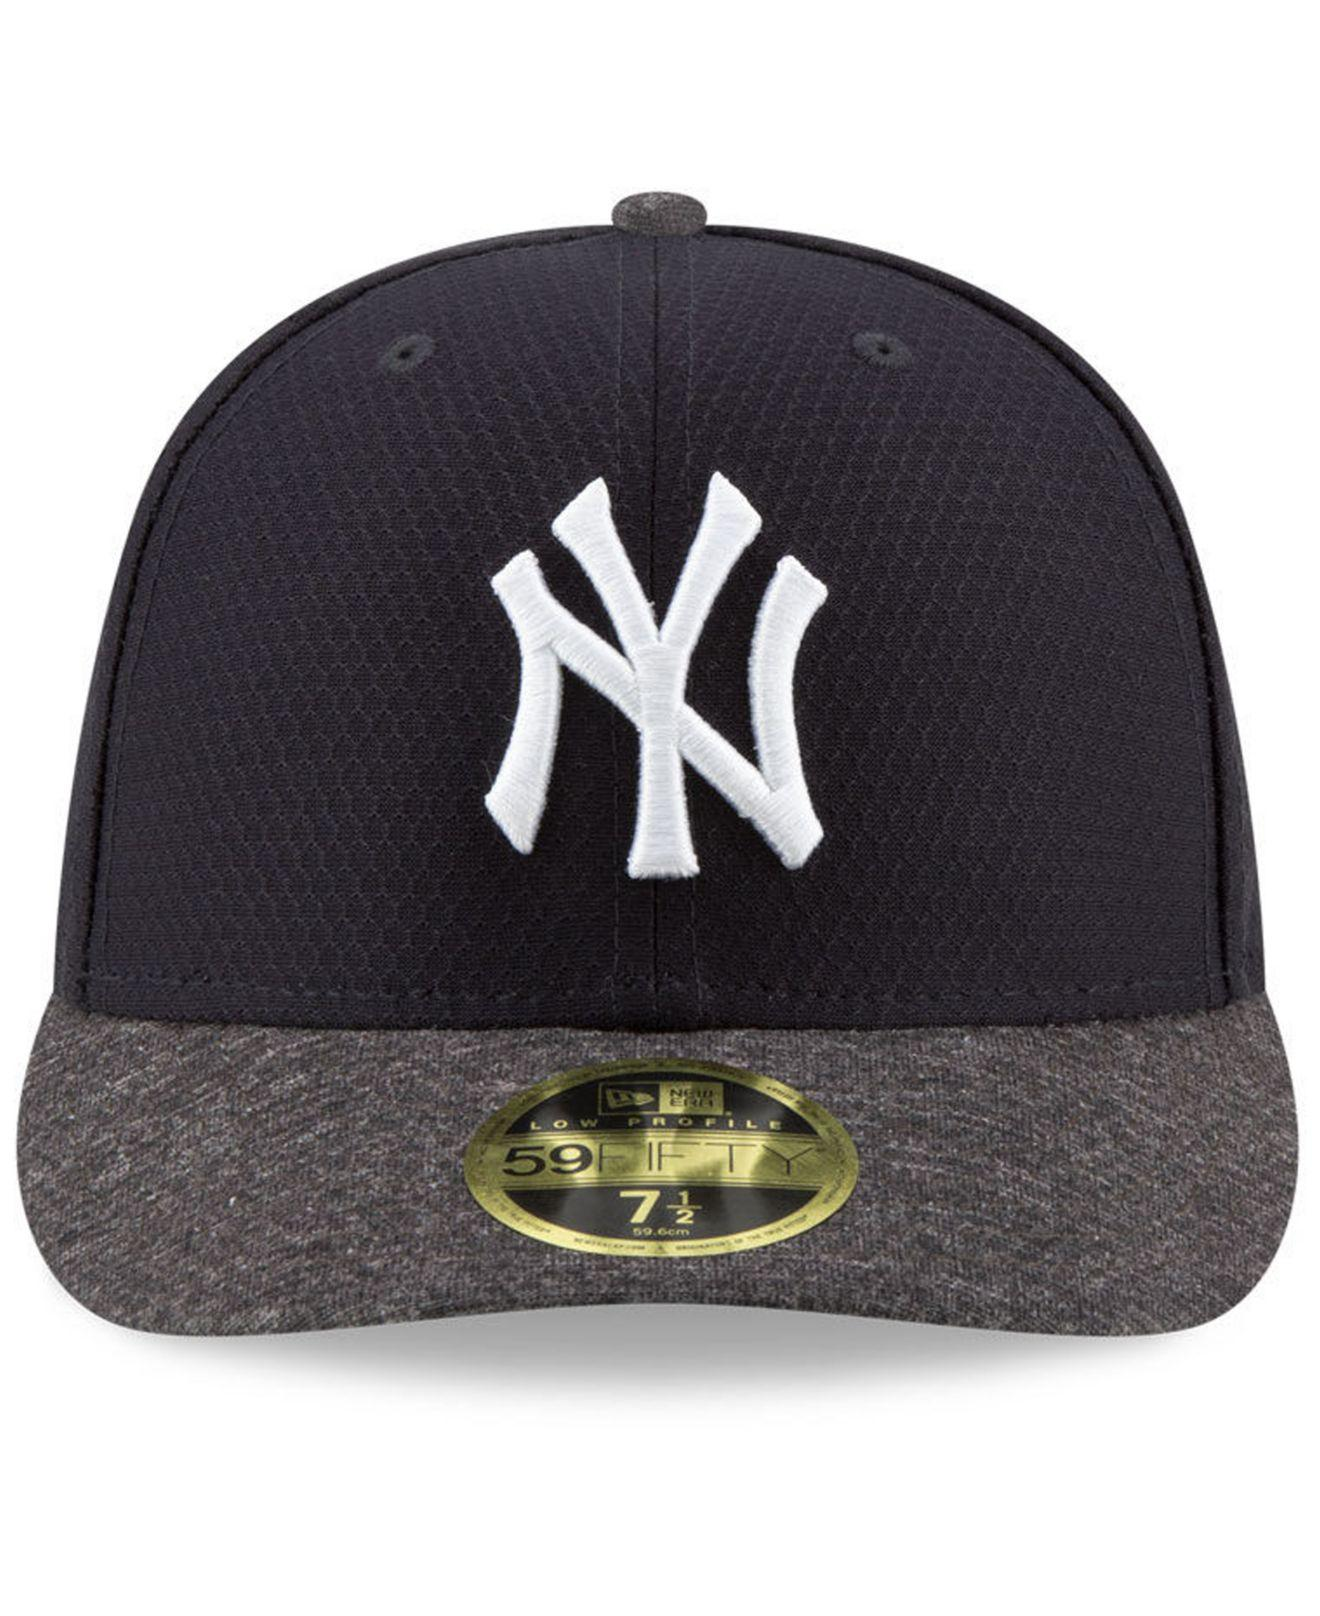 Lyst - KTZ New York Yankees Spring Training 59fifty-fitted Low Profile Cap  in Blue for Men 4f0903393f0